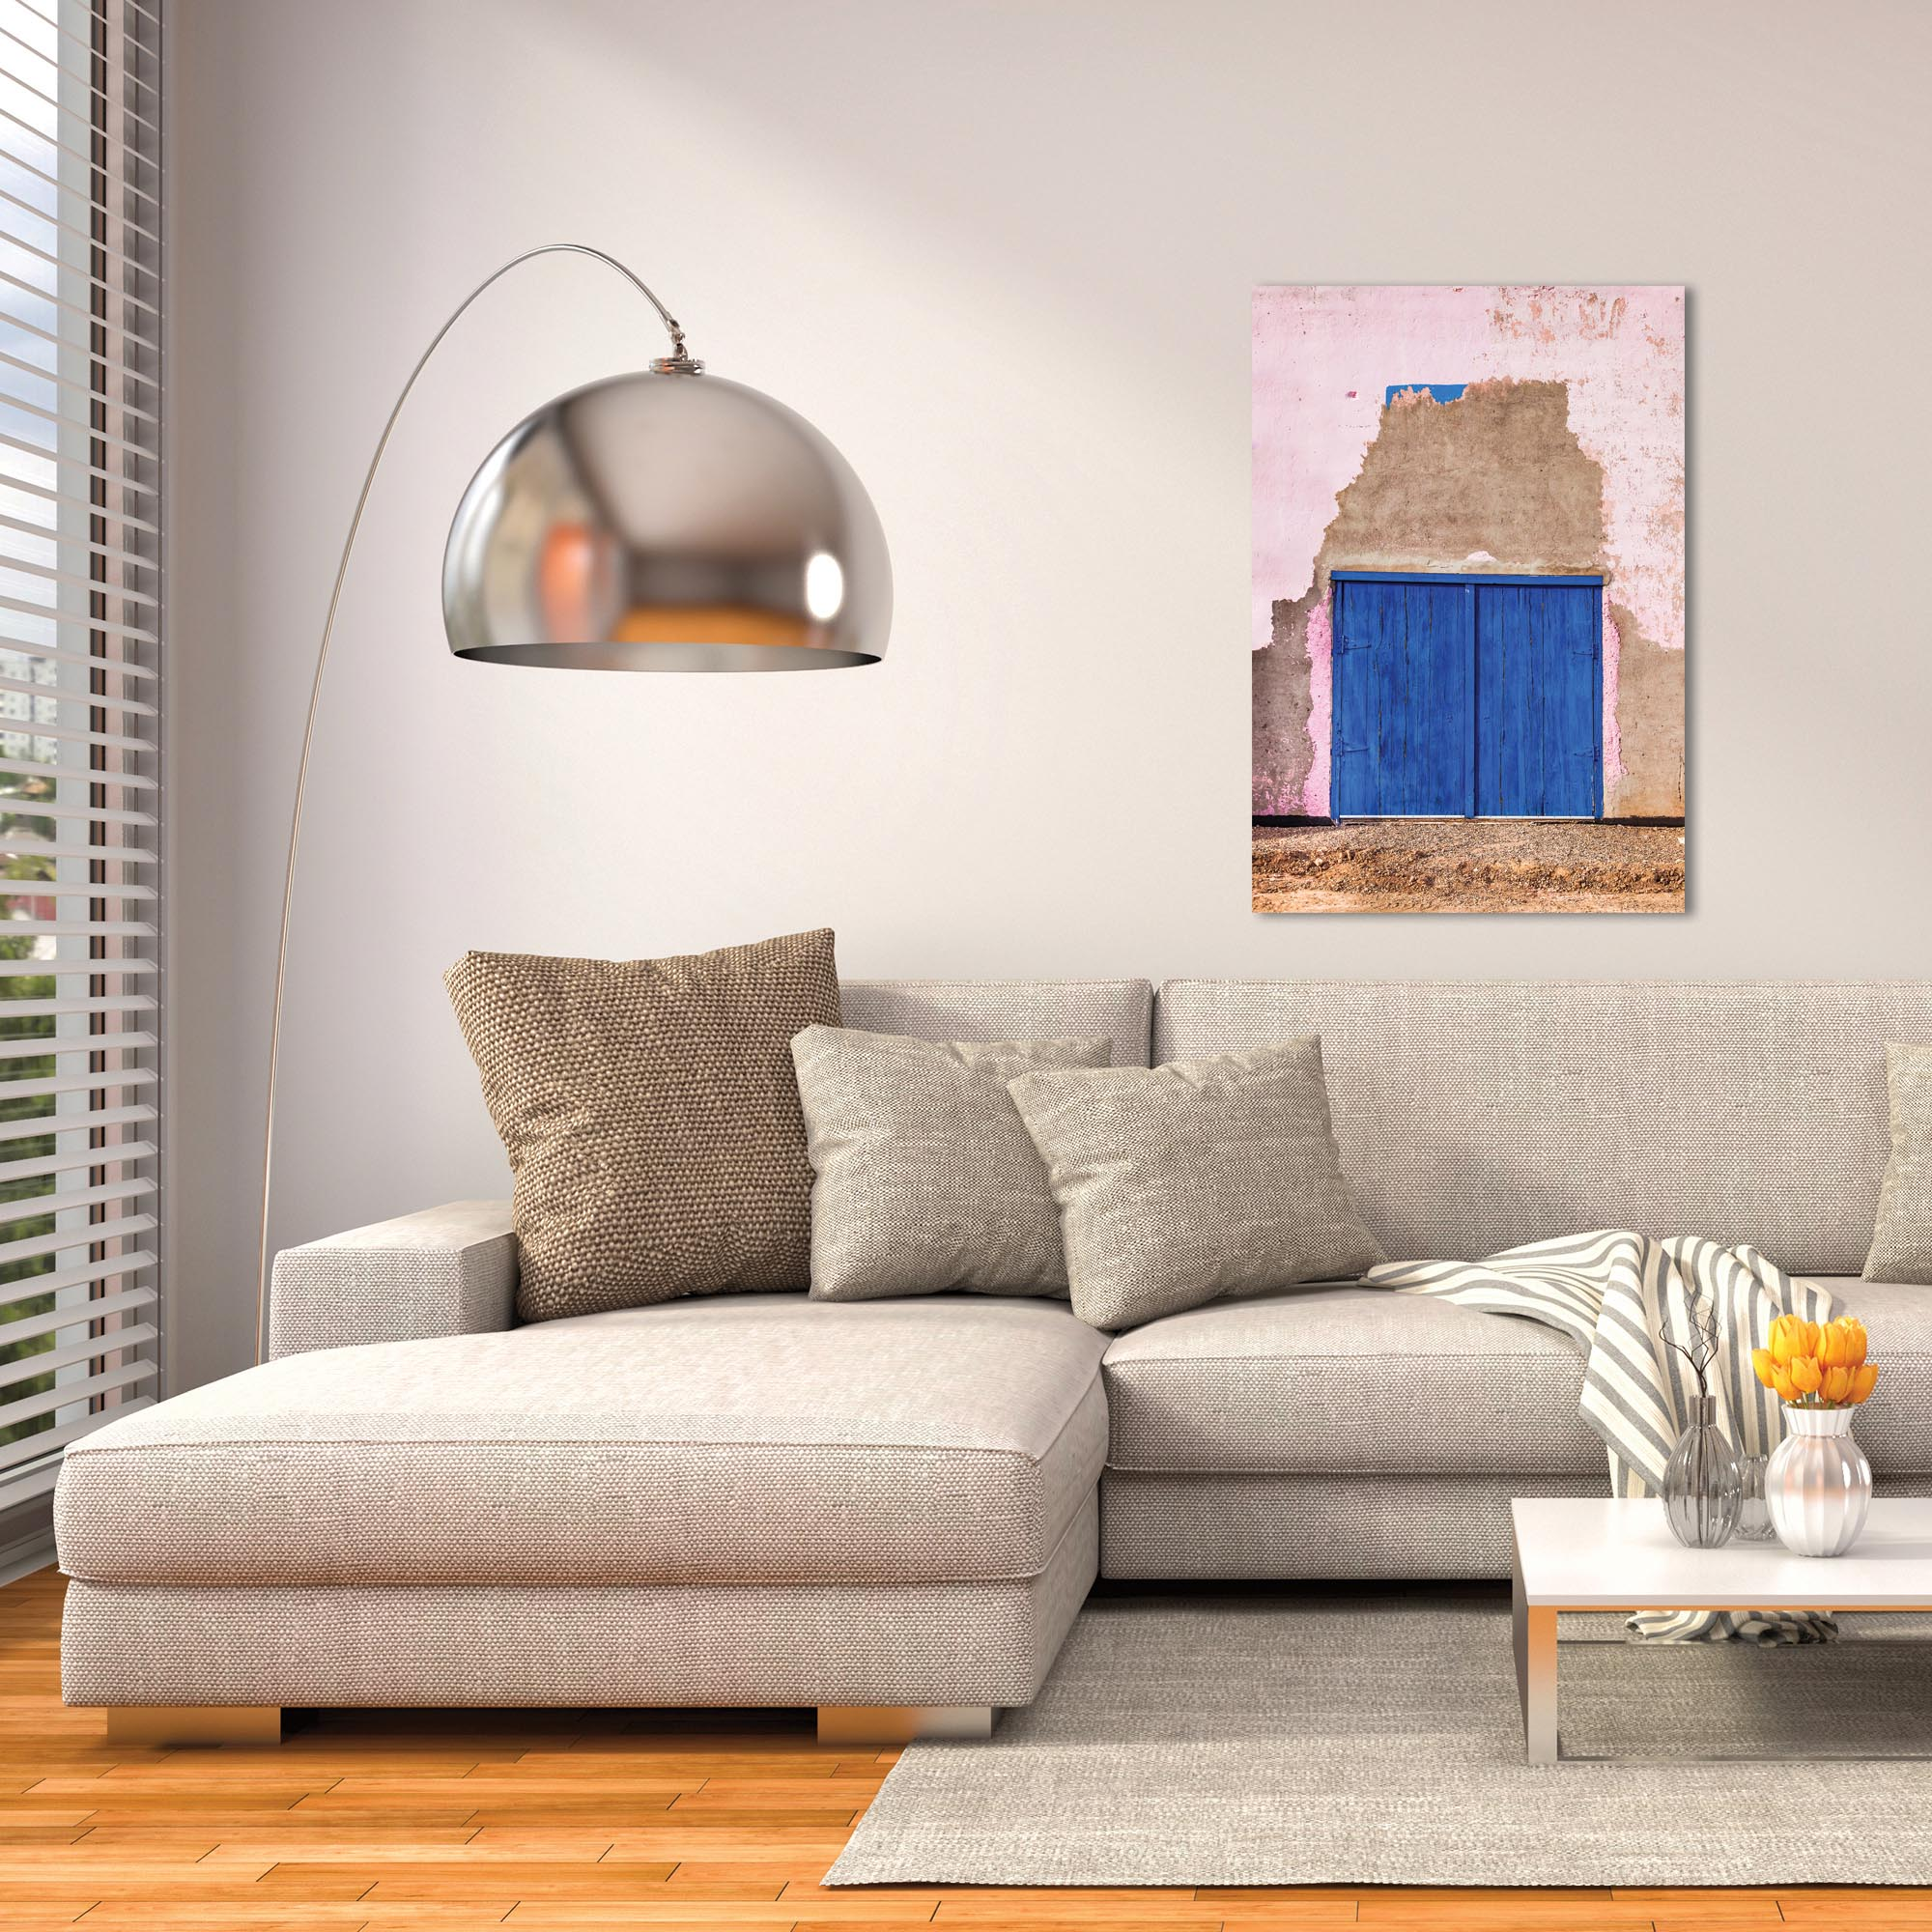 Eclectic Wall Art 'Blue Double Door' - Architecture Decor on Metal or Plexiglass - Lifestyle View